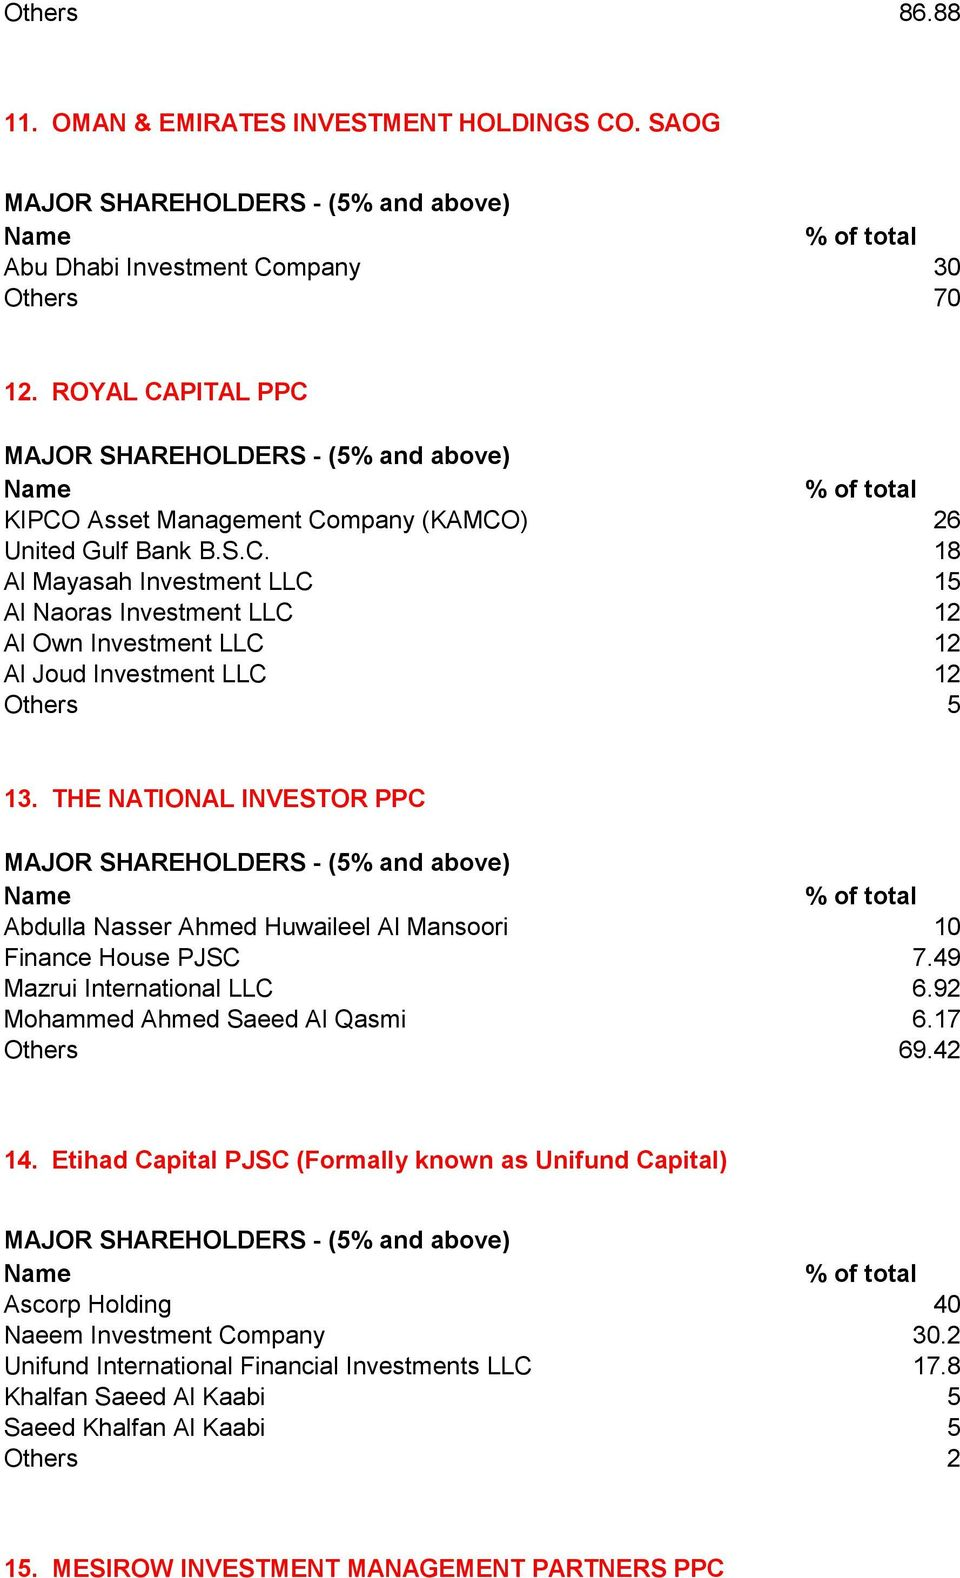 Etihad Capital PJSC (Formally known as Unifund Capital) Ascorp Holding 40 Naeem Investment Company 30.2 Unifund International Financial Investments LLC 17.